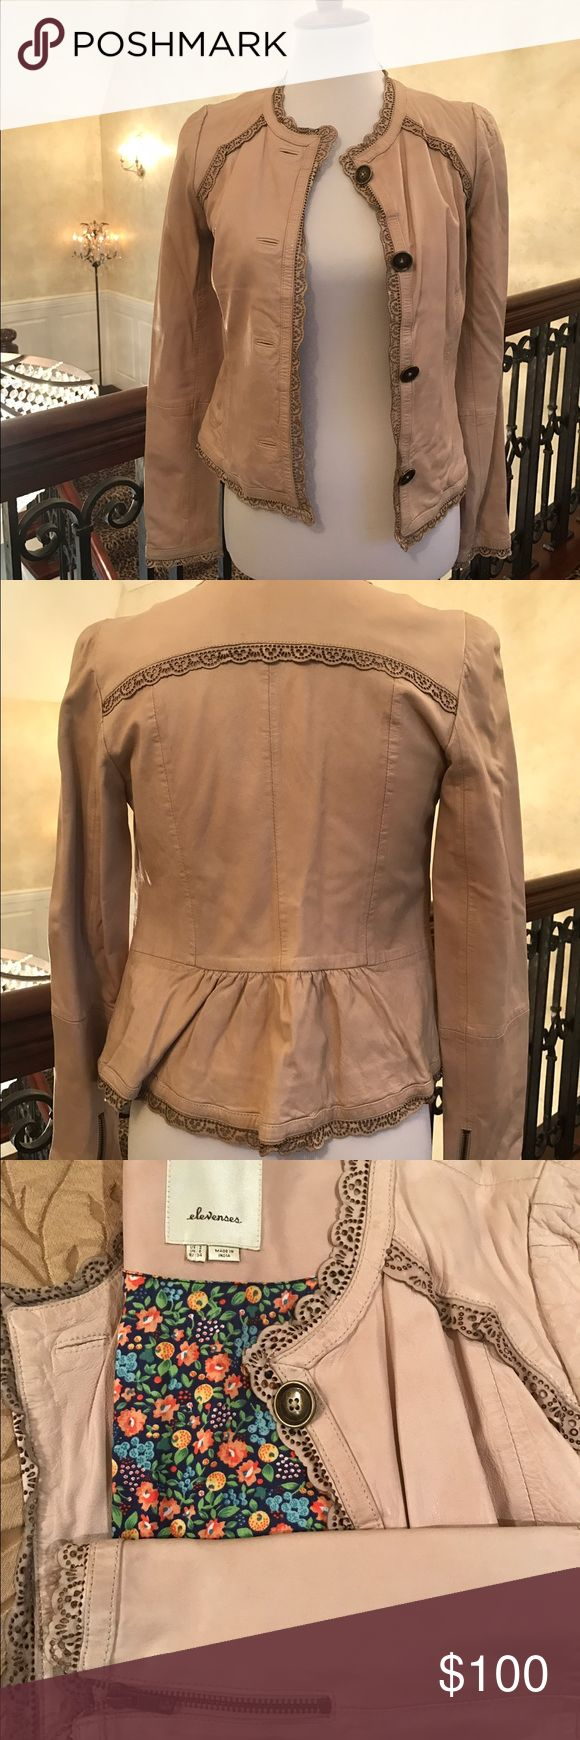 Anthropology Elevenses Tan Leather Jacket Tan leather jacket with peplum outlined with a delicate scalloped end. Zippers on the arms. Originally paid 125.00 for this. I only wore it once. Anthropologie Jackets & Coats